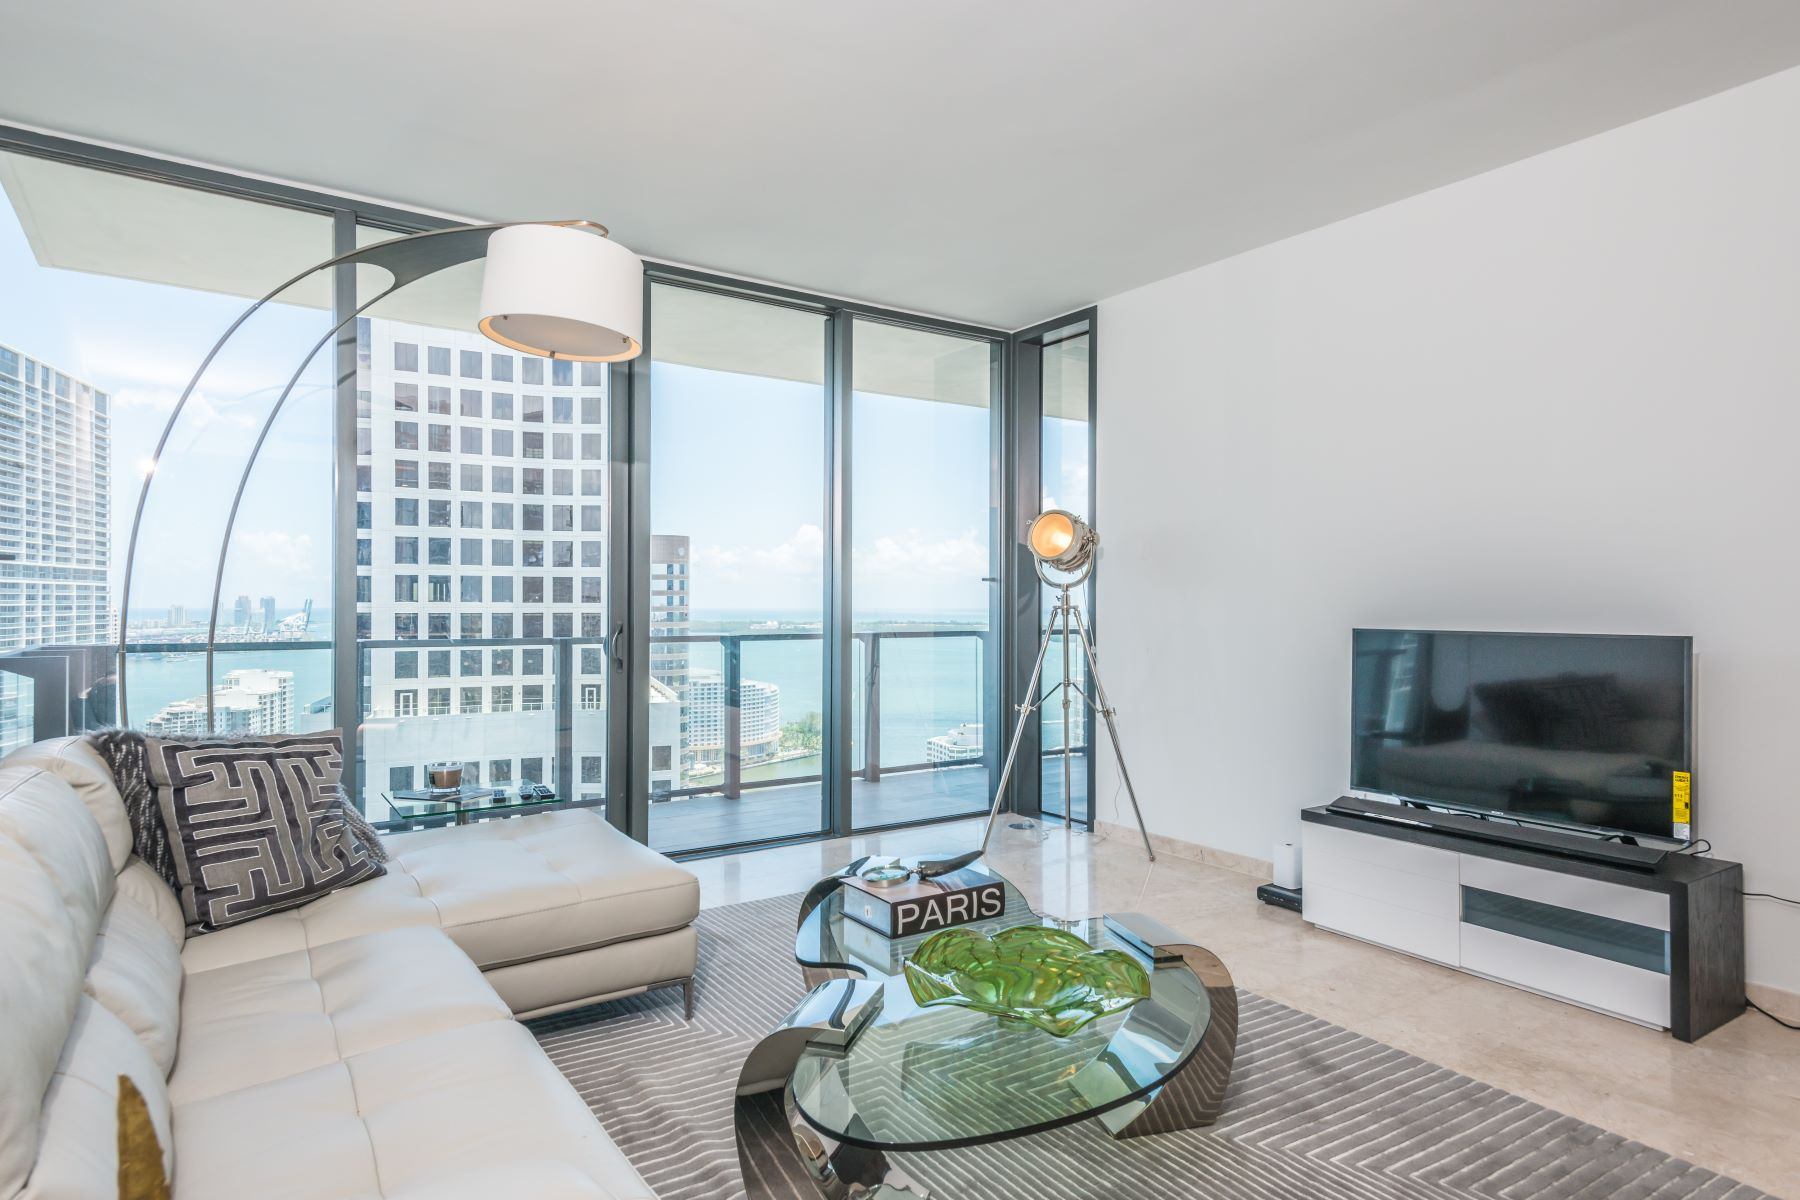 Condominium for Sale at 68 Se 6 St #3403 68 Se6 St 3403 Miami, Florida 33131 United States